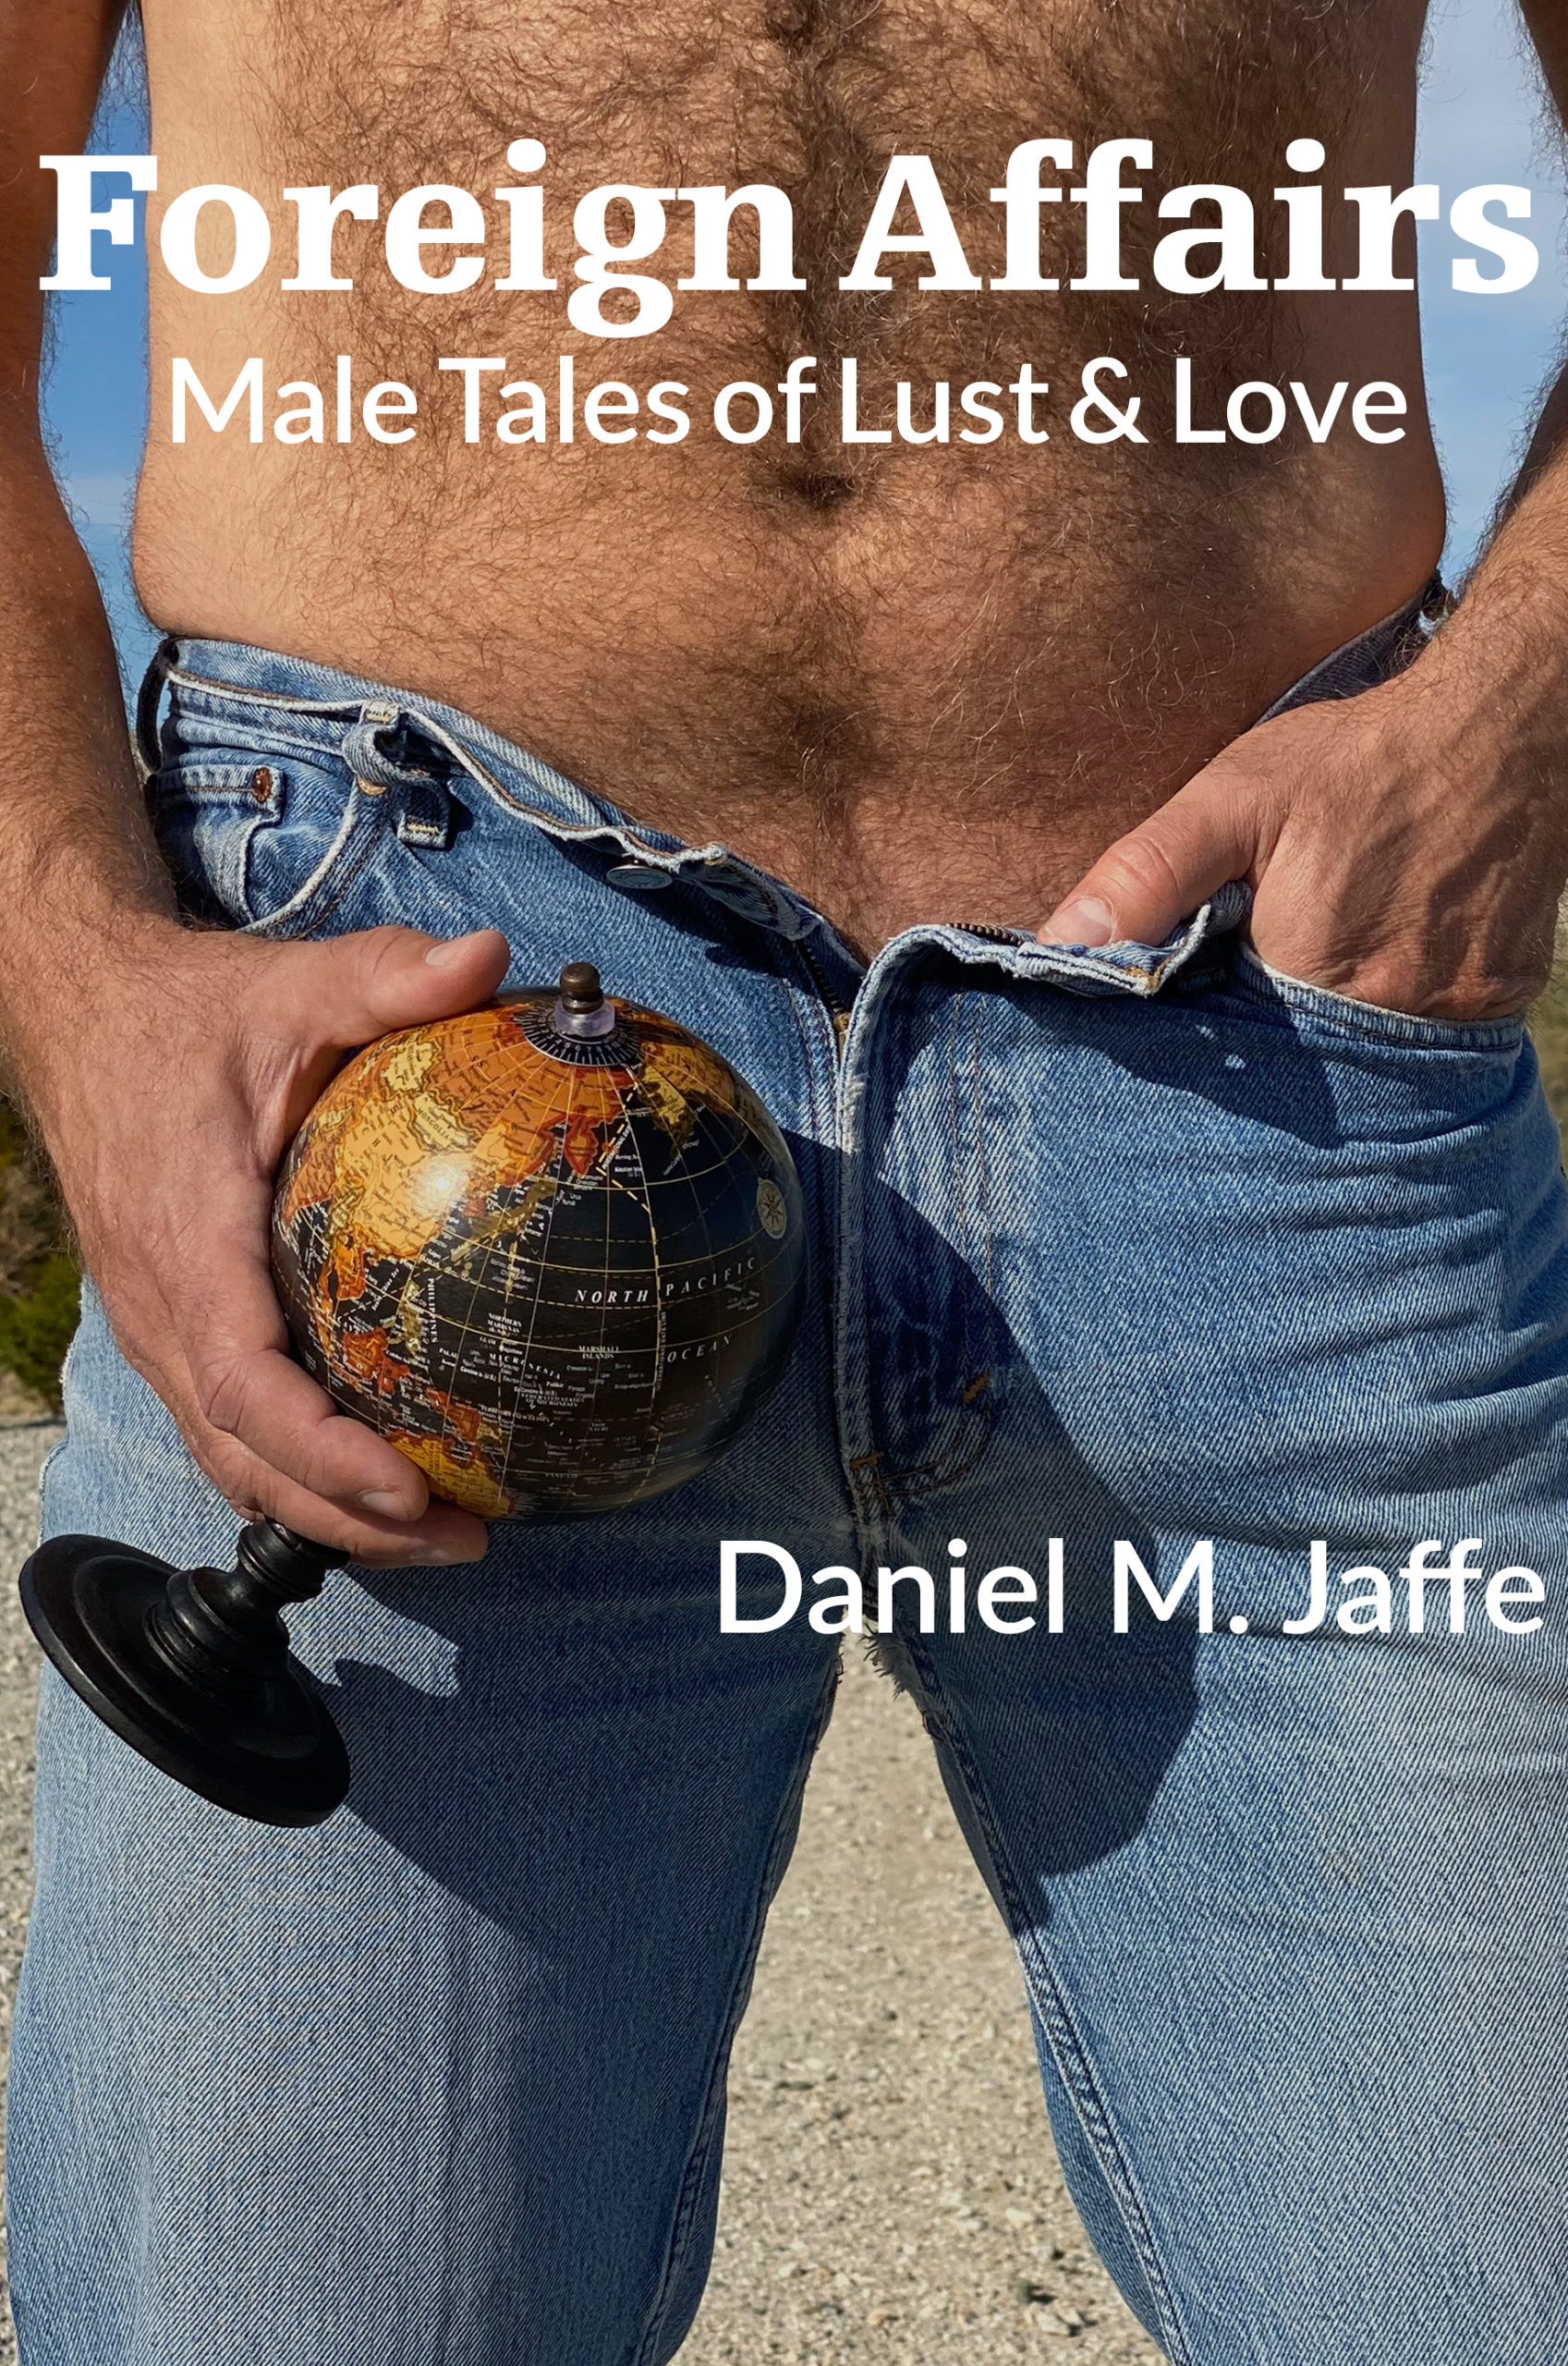 Foreign Affairs: Male Tales of Lust & Love